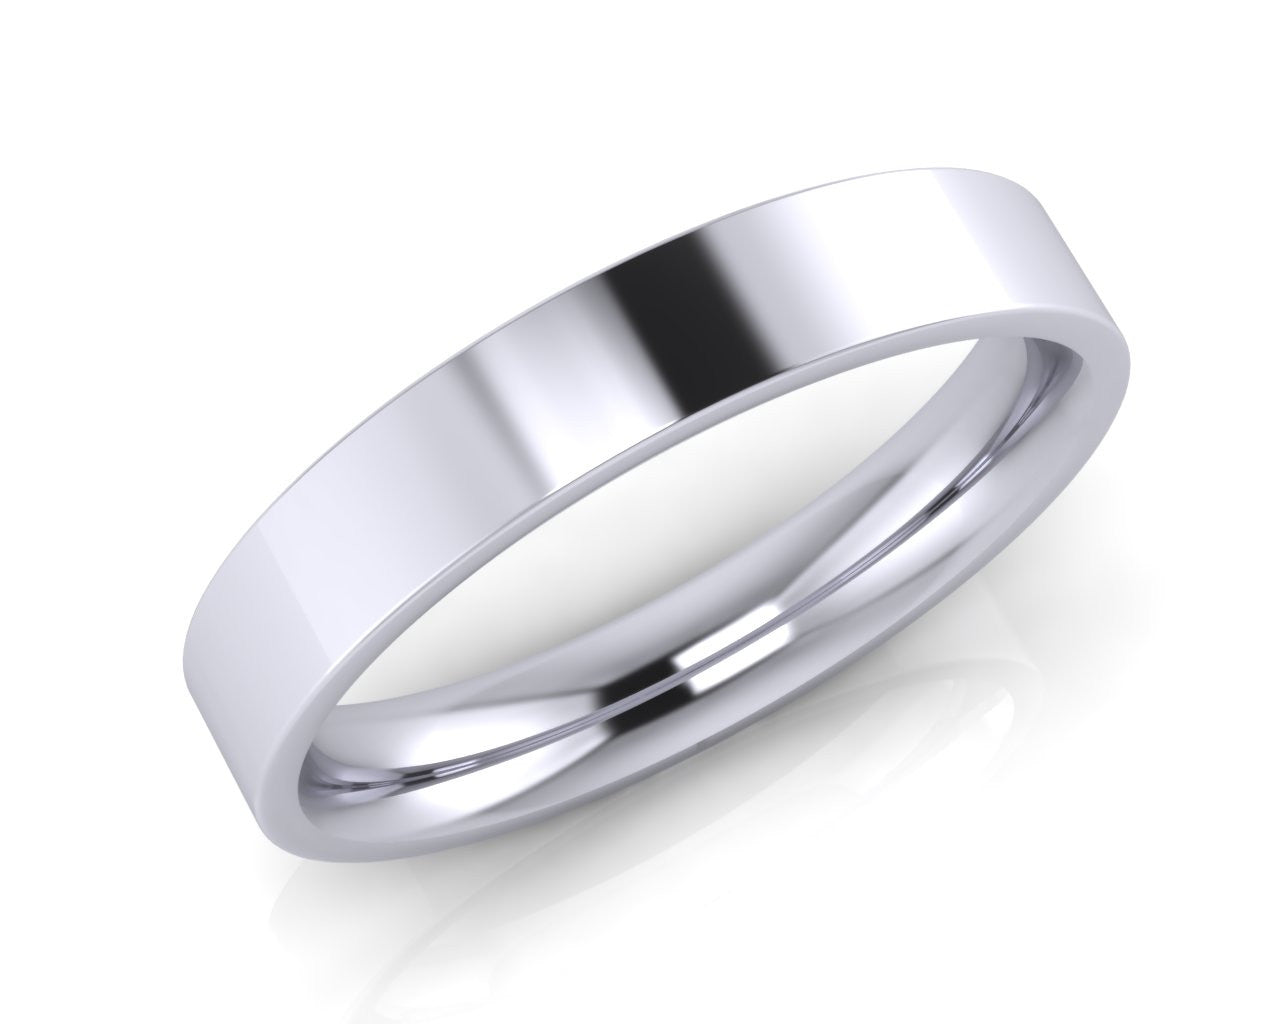 Platinum Demi-Ellipse Wedding Ring 4.0mm Size T - all ring sizes available - Andrew Scott